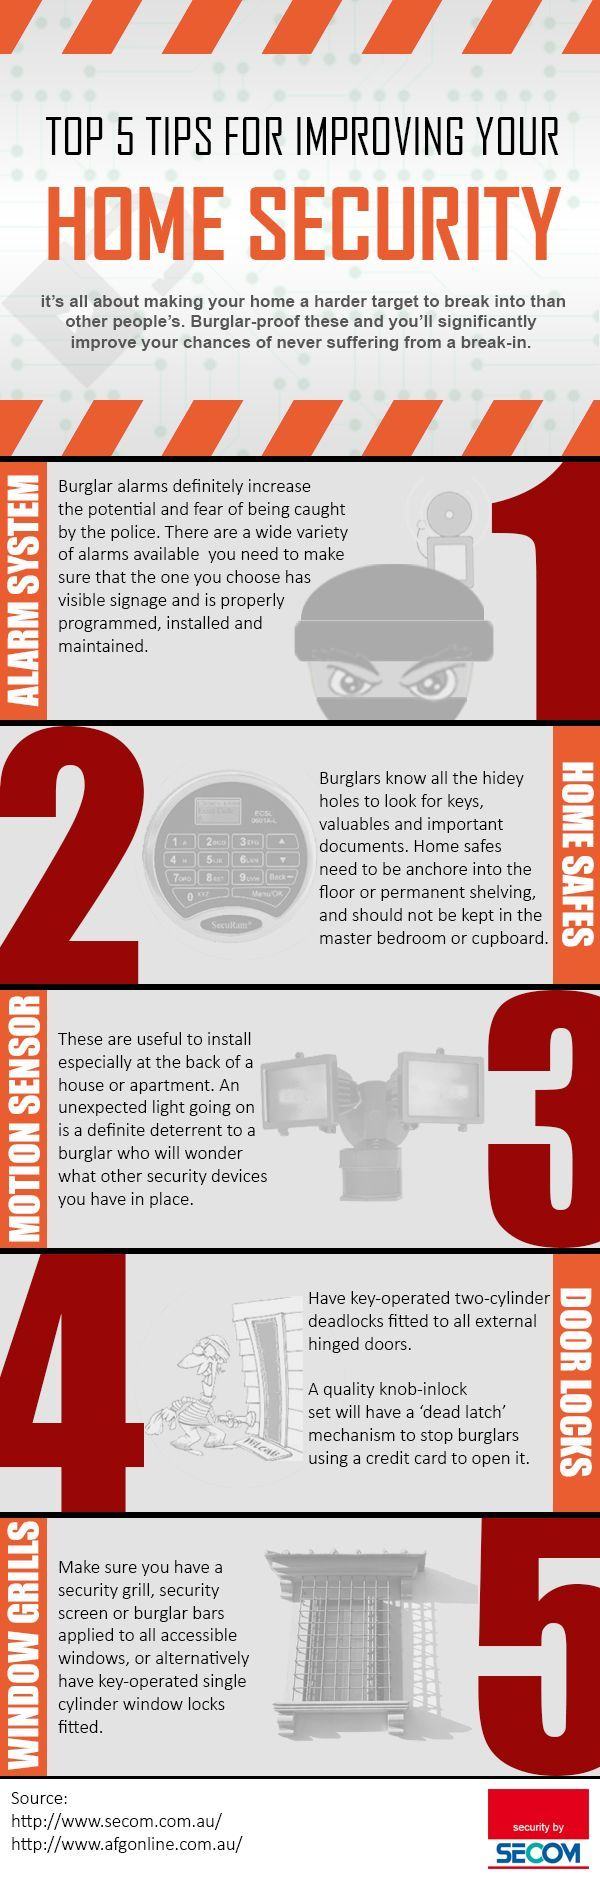 [Infographic] Home Security Tips from SECOM | TLB